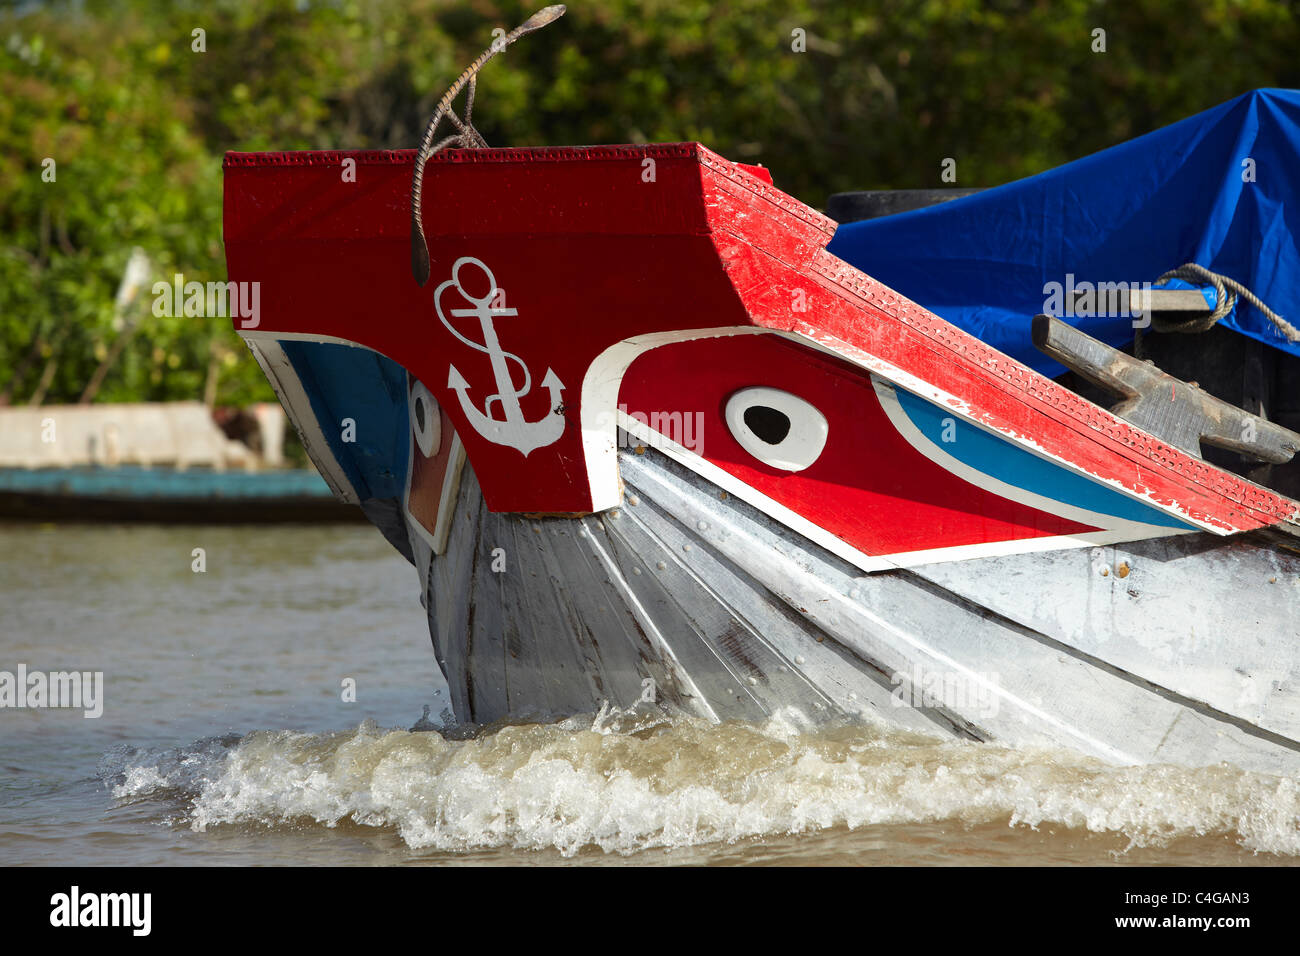 the bow of a boat, Mekong Delta, Vietnam - Stock Image